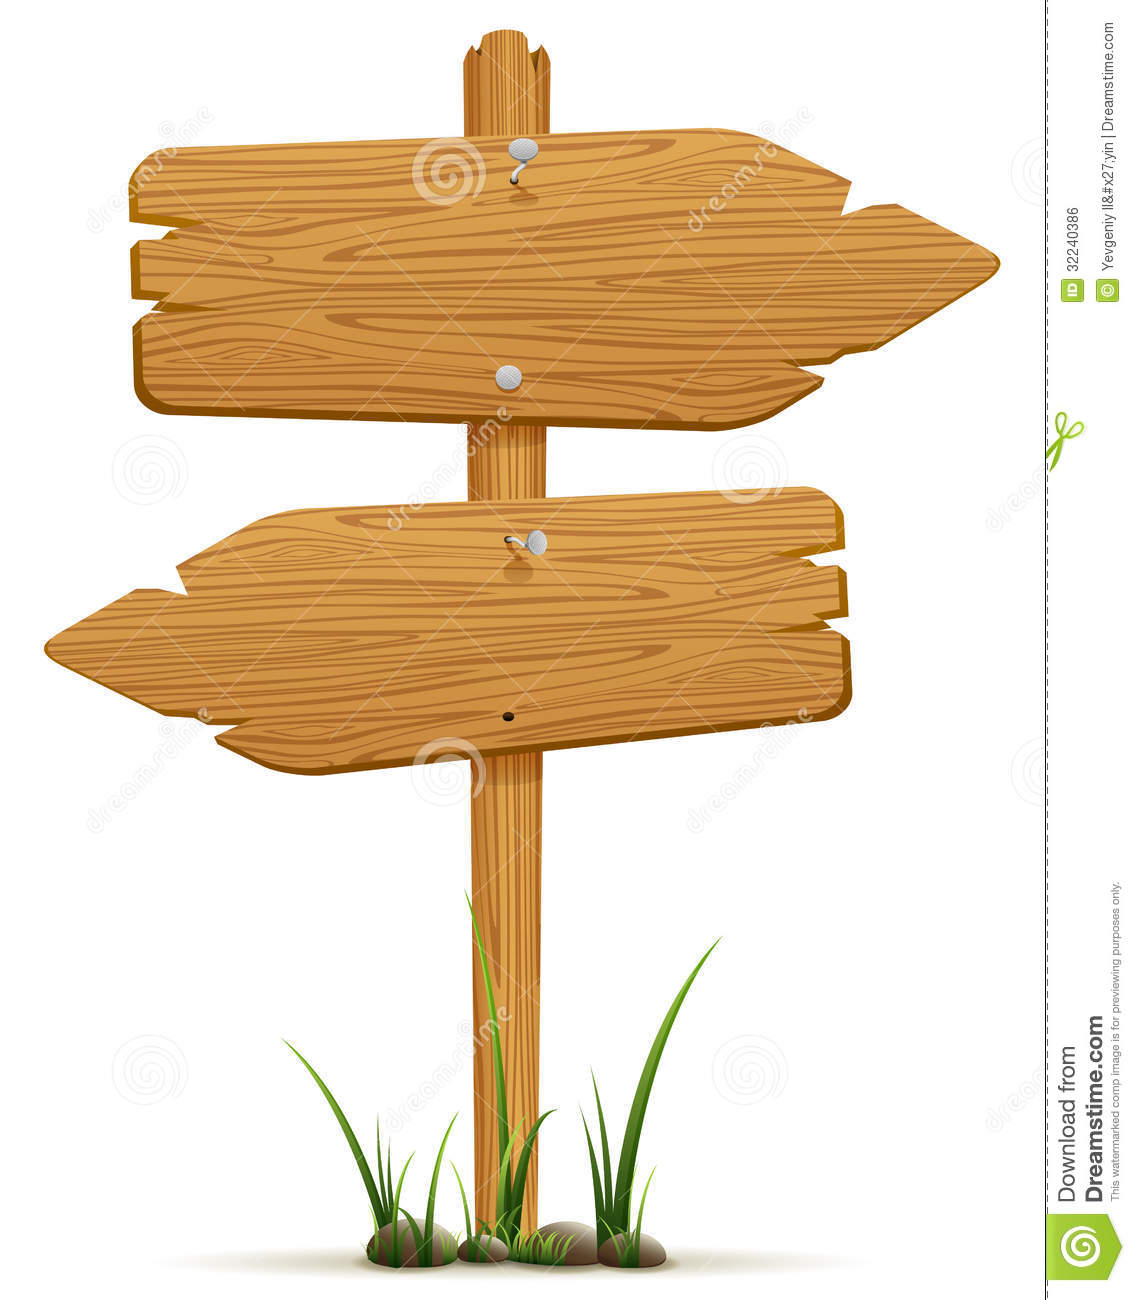 Wooden Signs Royalty Free Stock Image Image 32240386